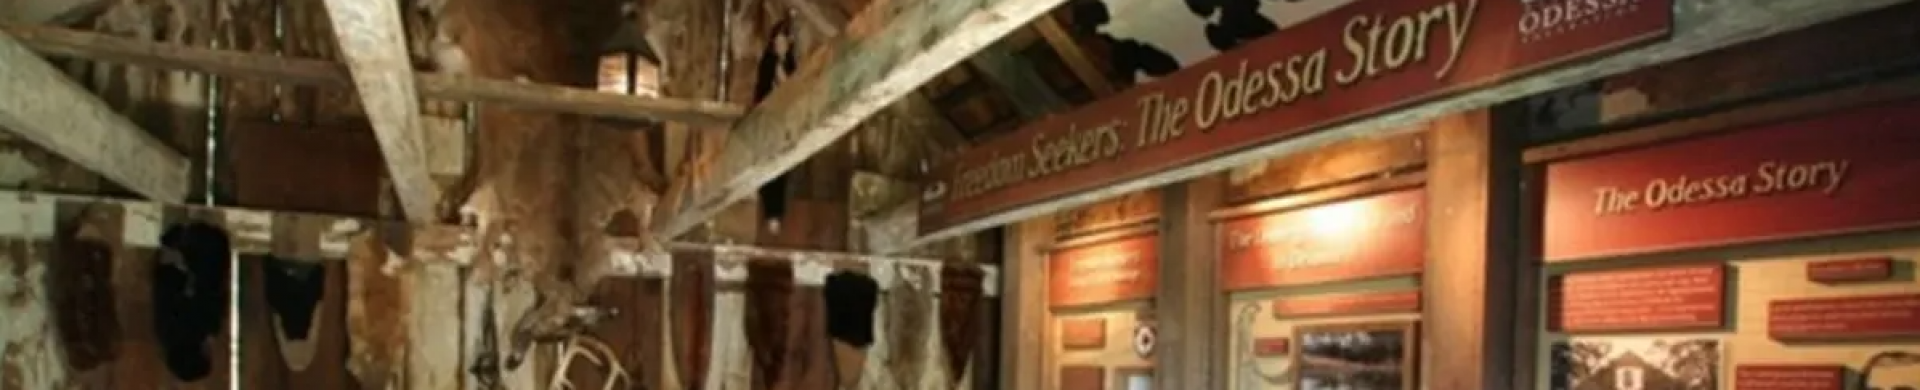 """National Park Service Network to Freedom exhibit, """"Freedom Seekers: the Odessa Story"""""""